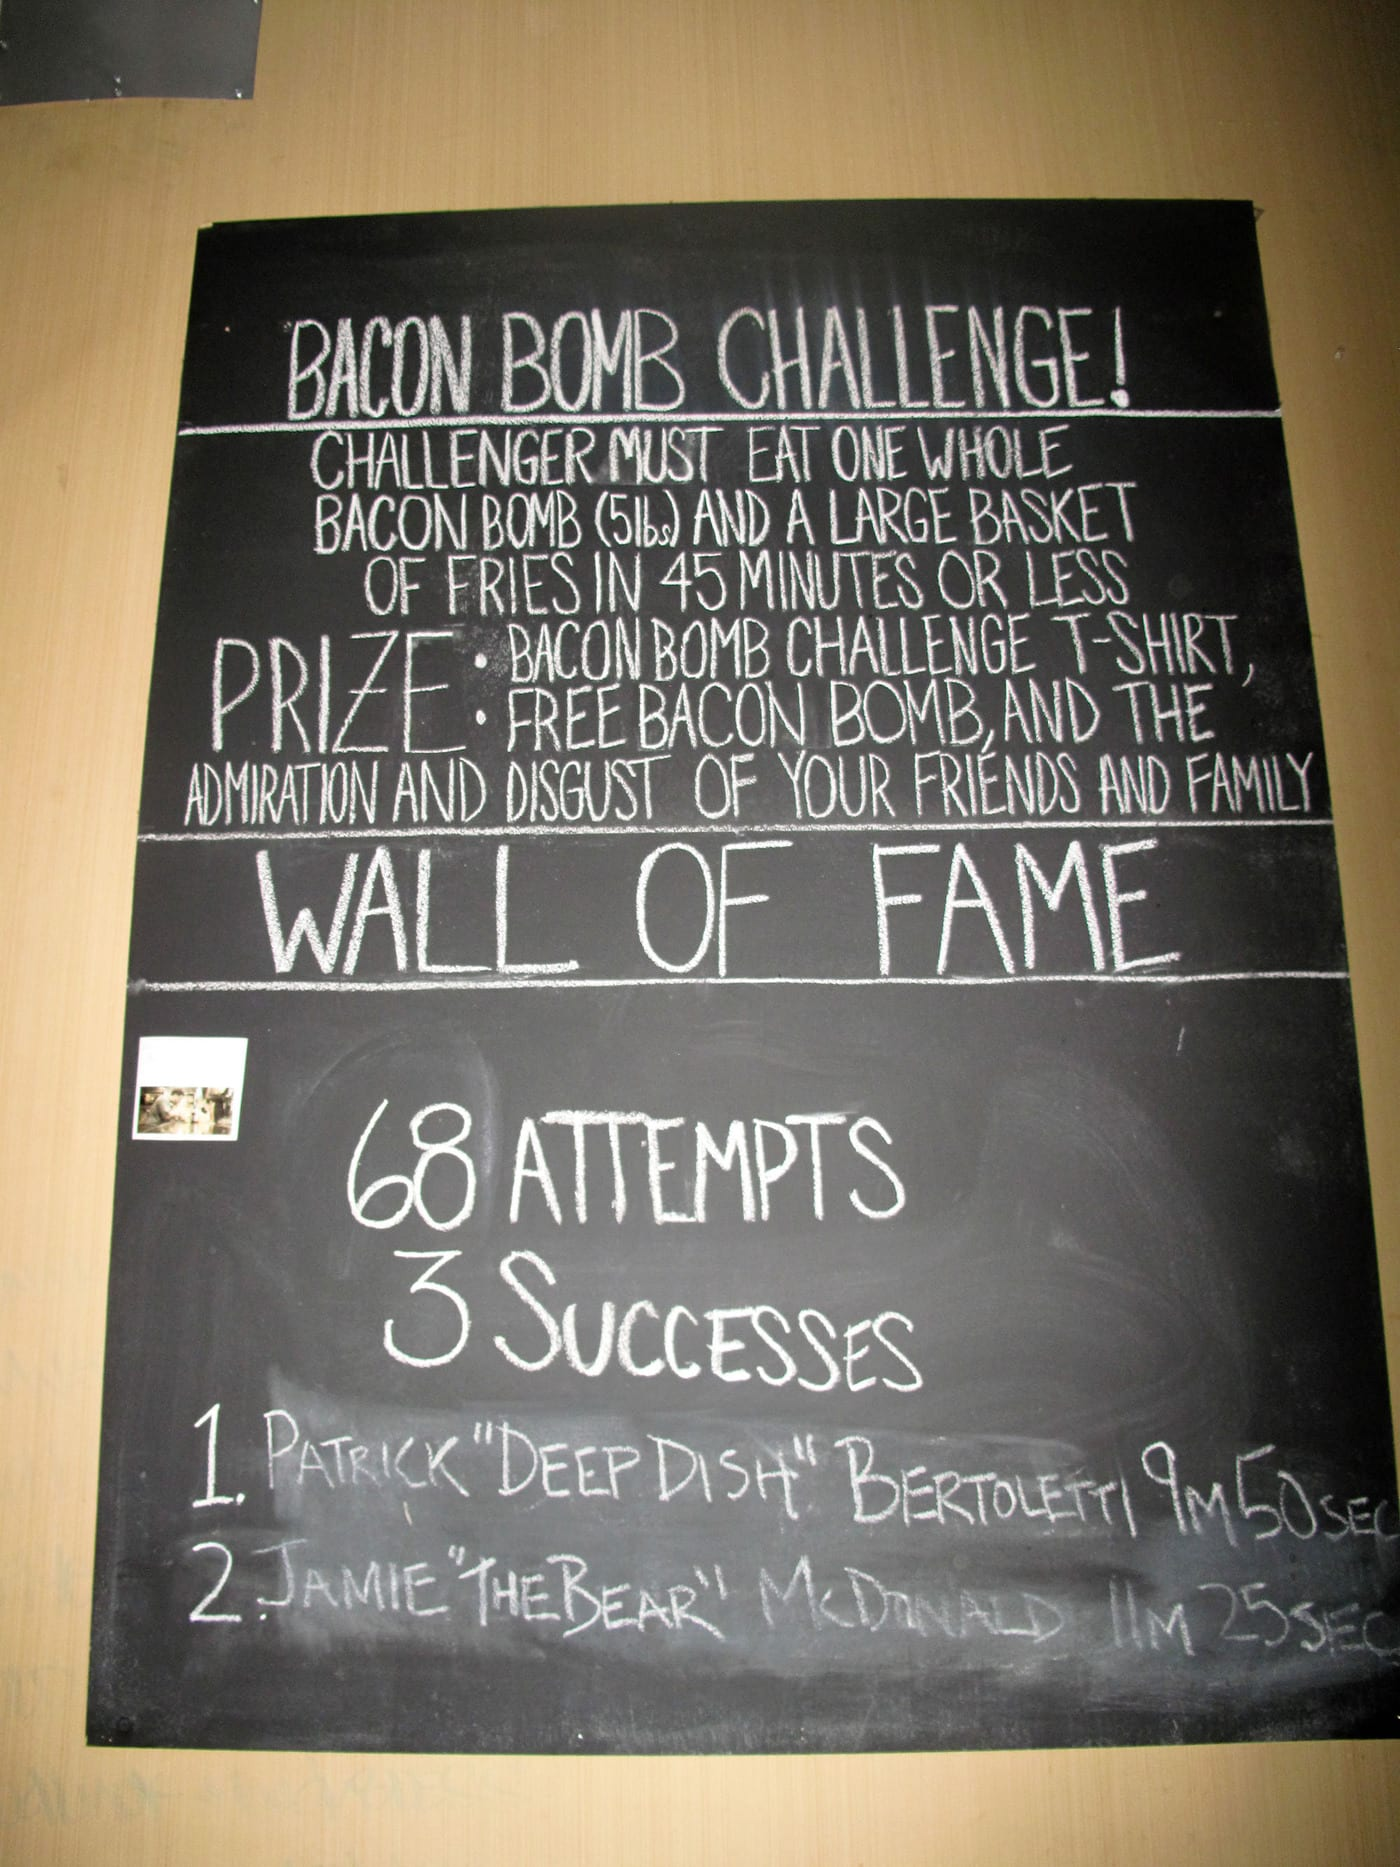 Bacon Bomb Challenge at Paddy Long's in Chicago, Illinois